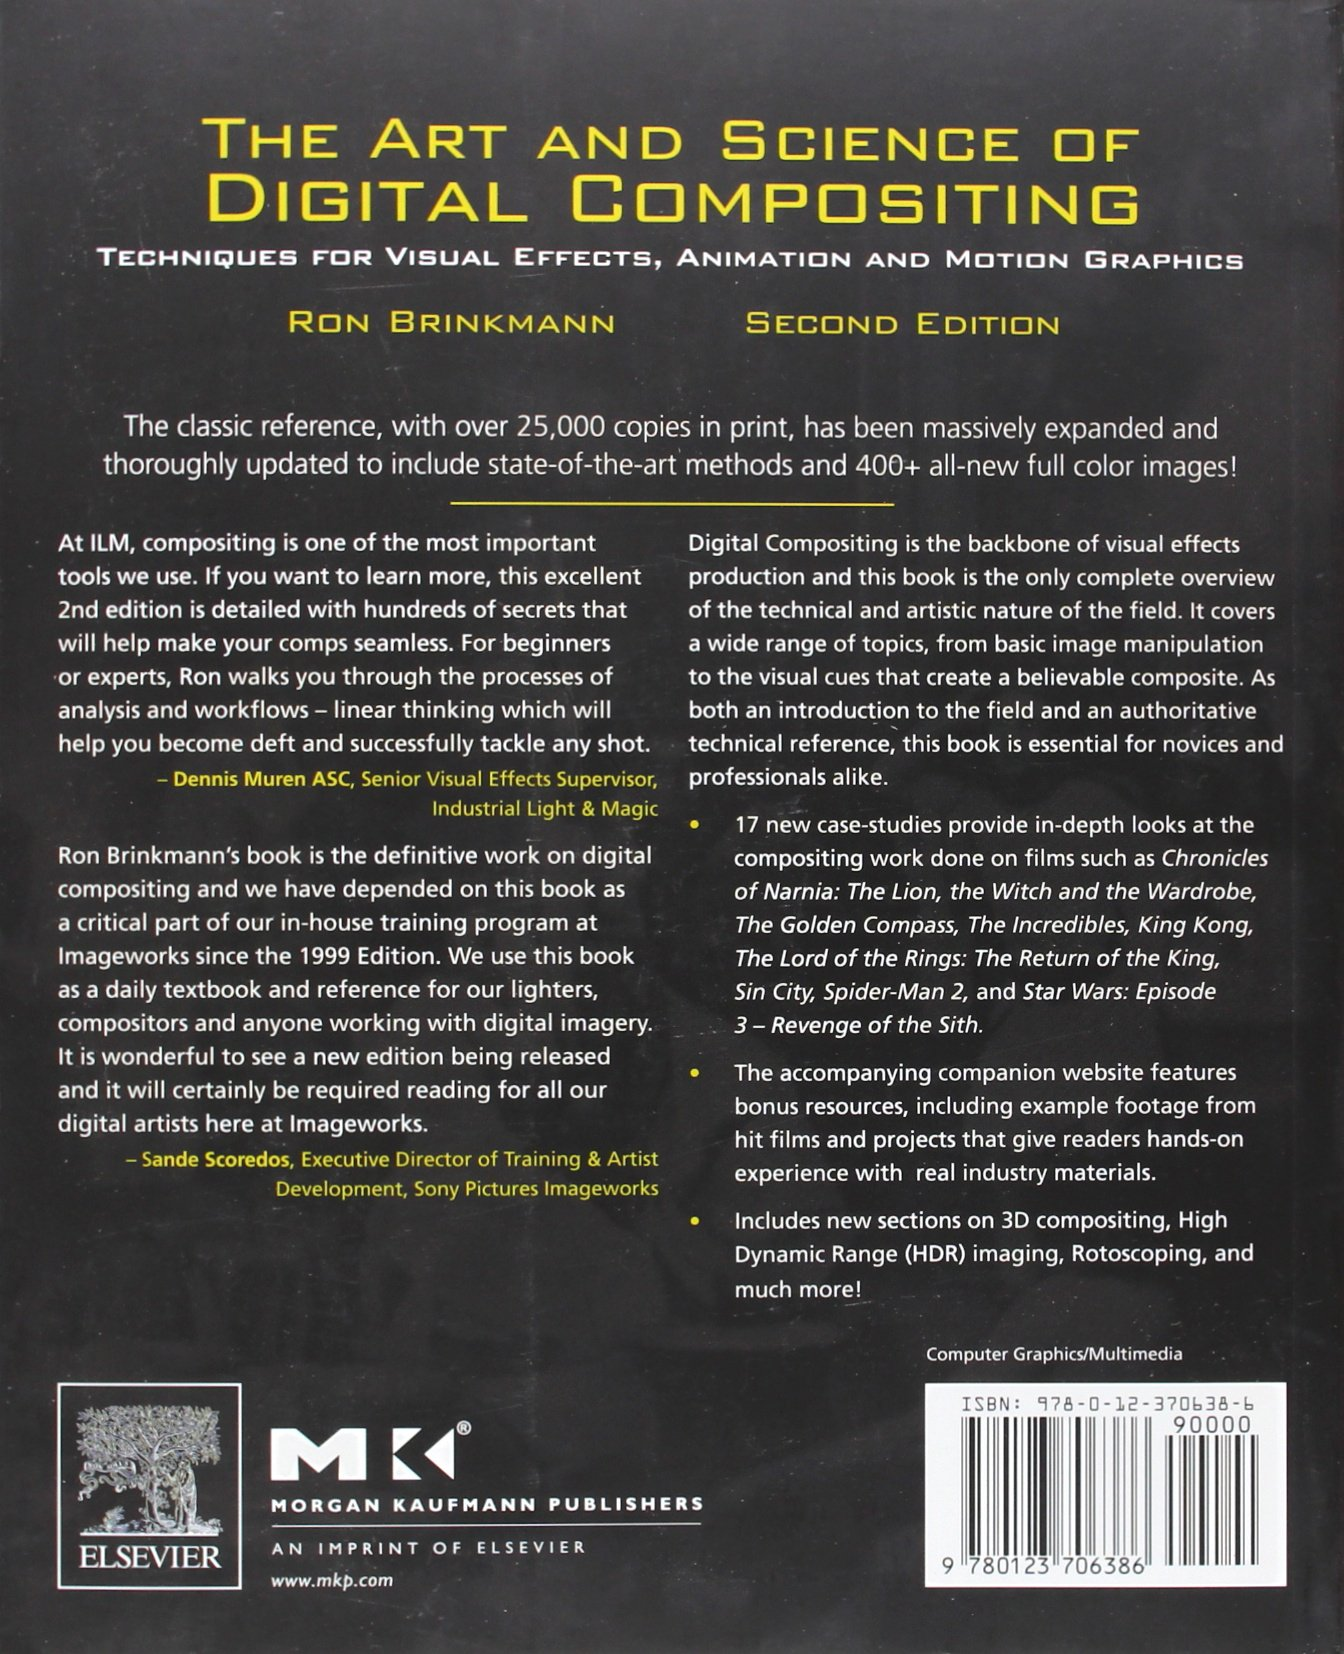 the art ans science of digital compositing cover2